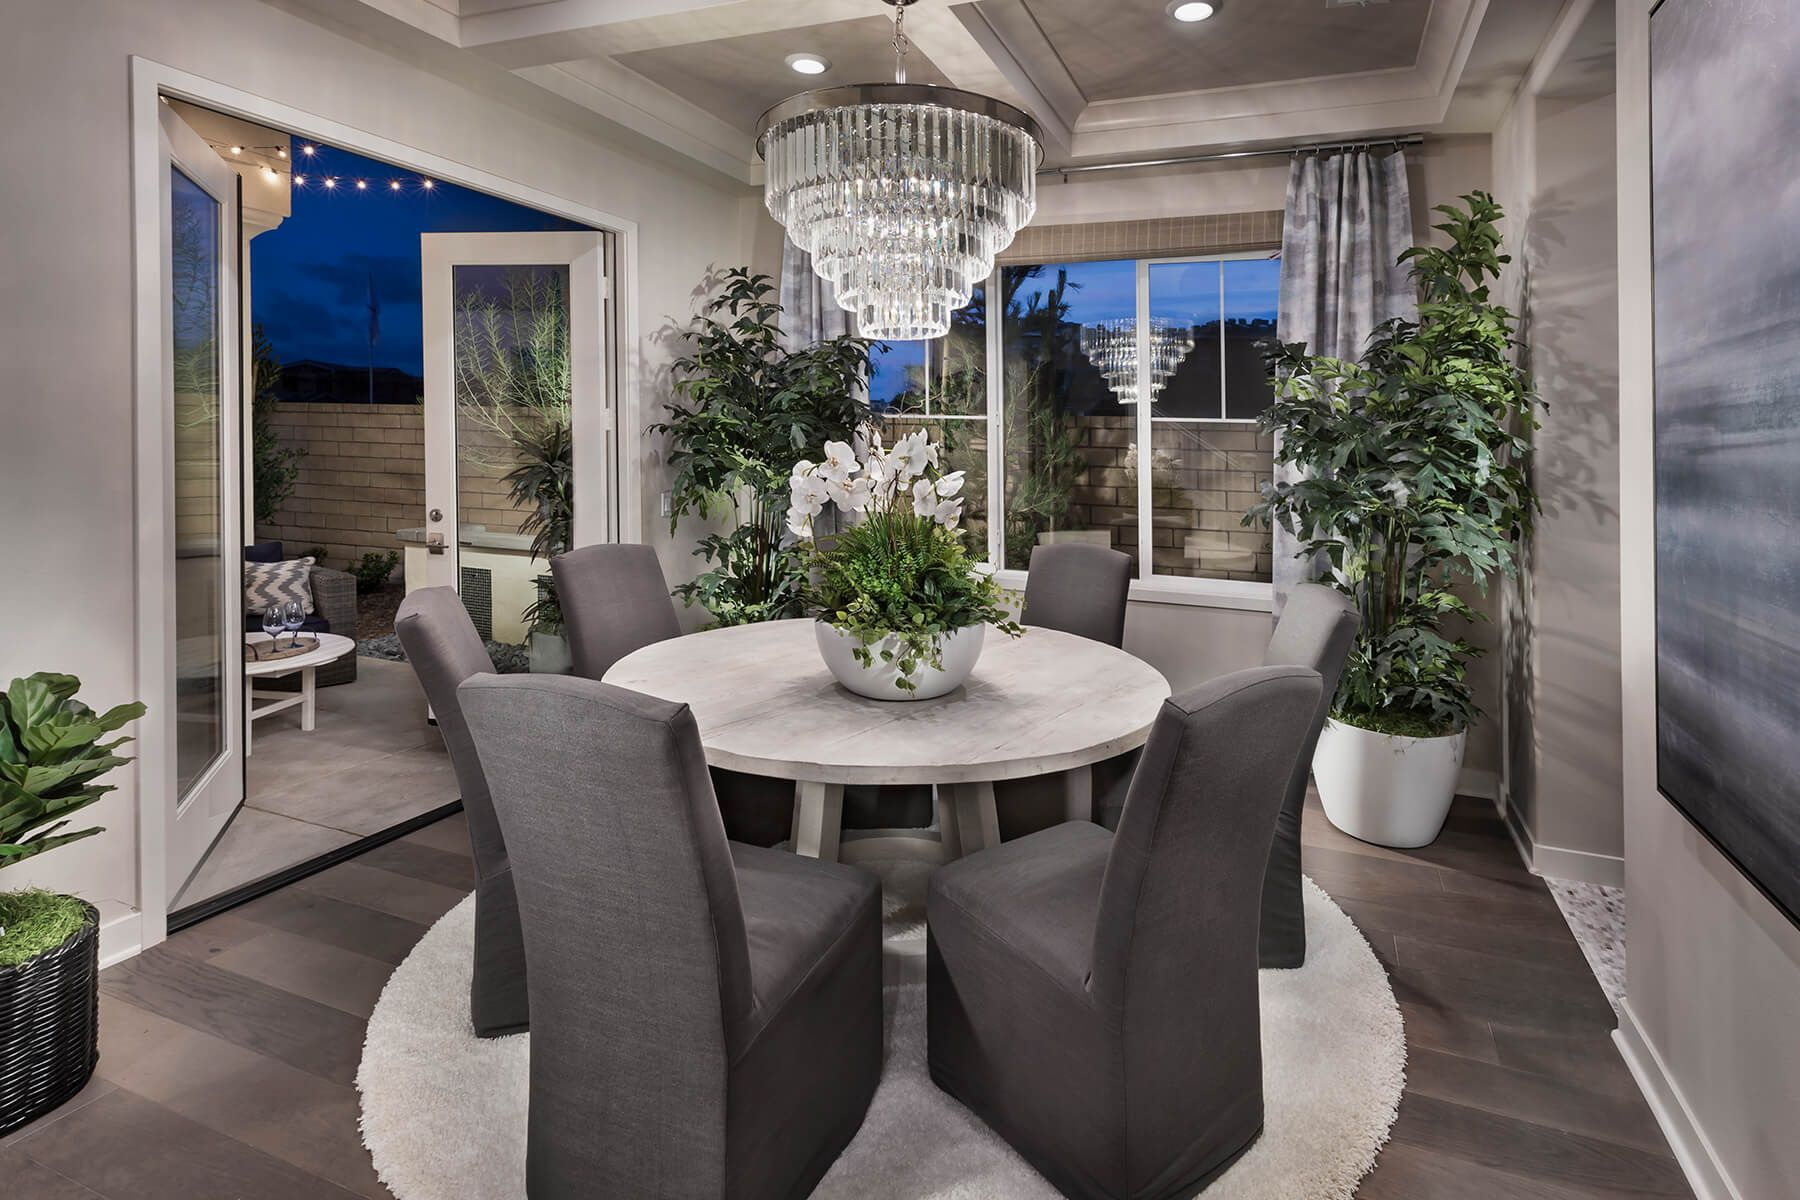 Ambrosia Interior Design With Images Beautiful Dining Rooms